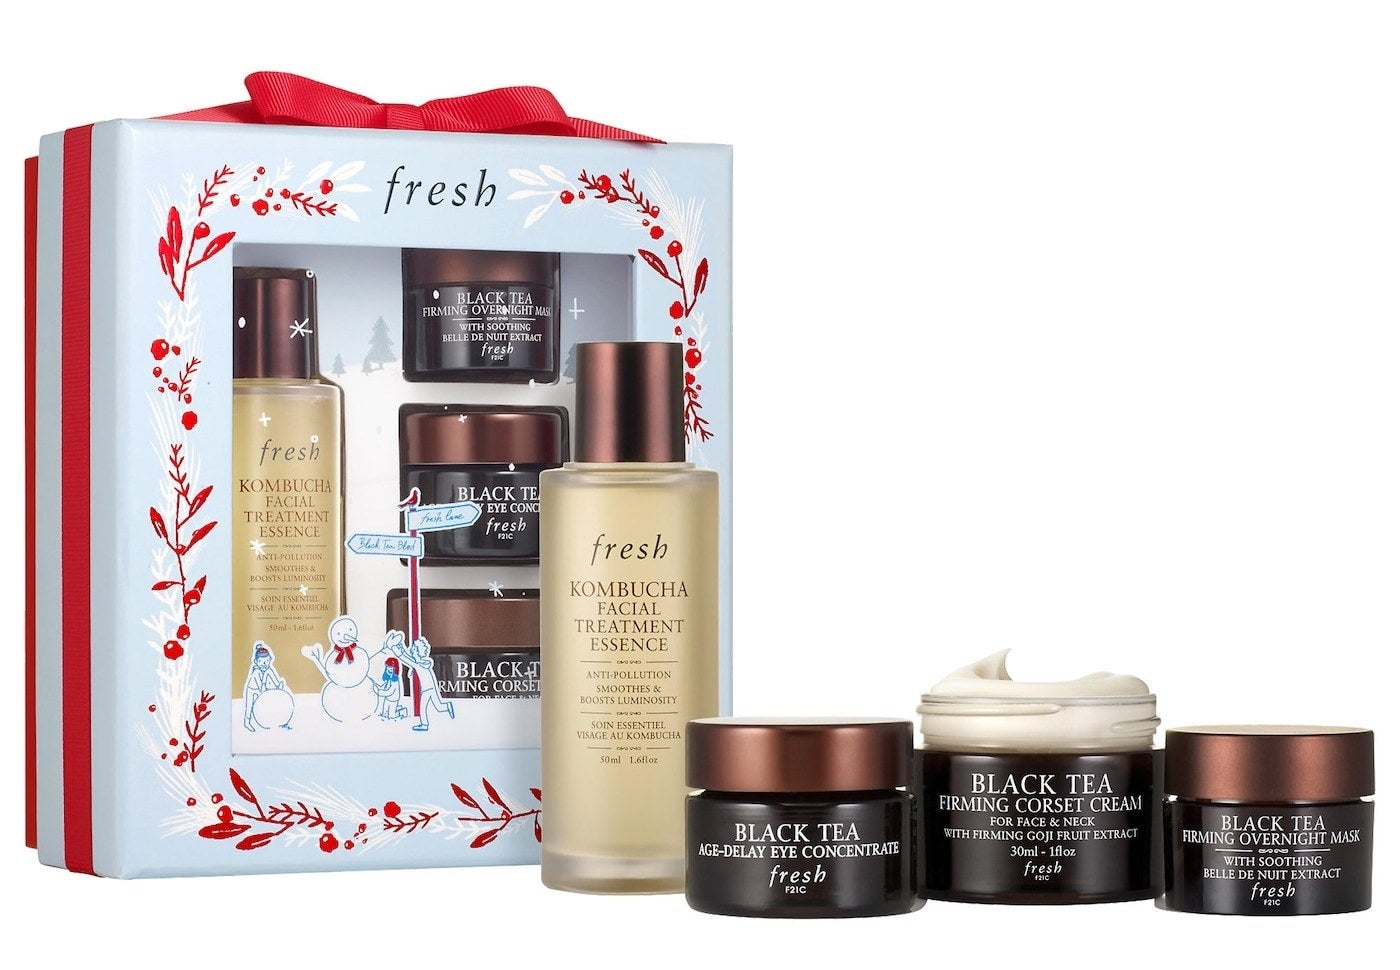 The products and holiday-themed packaging